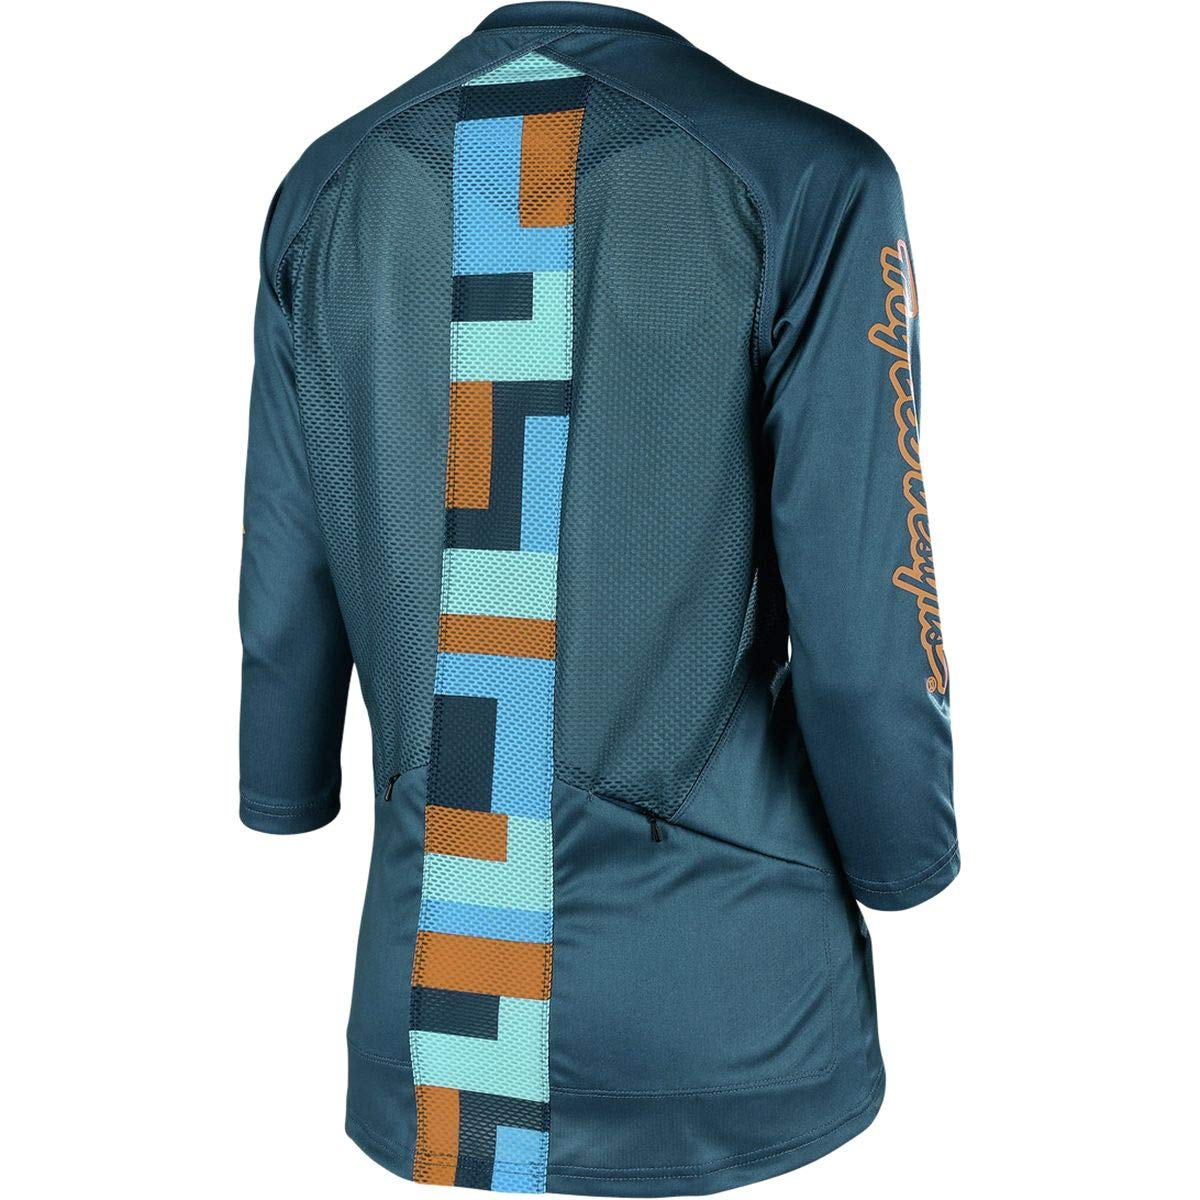 Troy Lee Designs Ruckus Womens Off-Road BMX Cycling Jersey